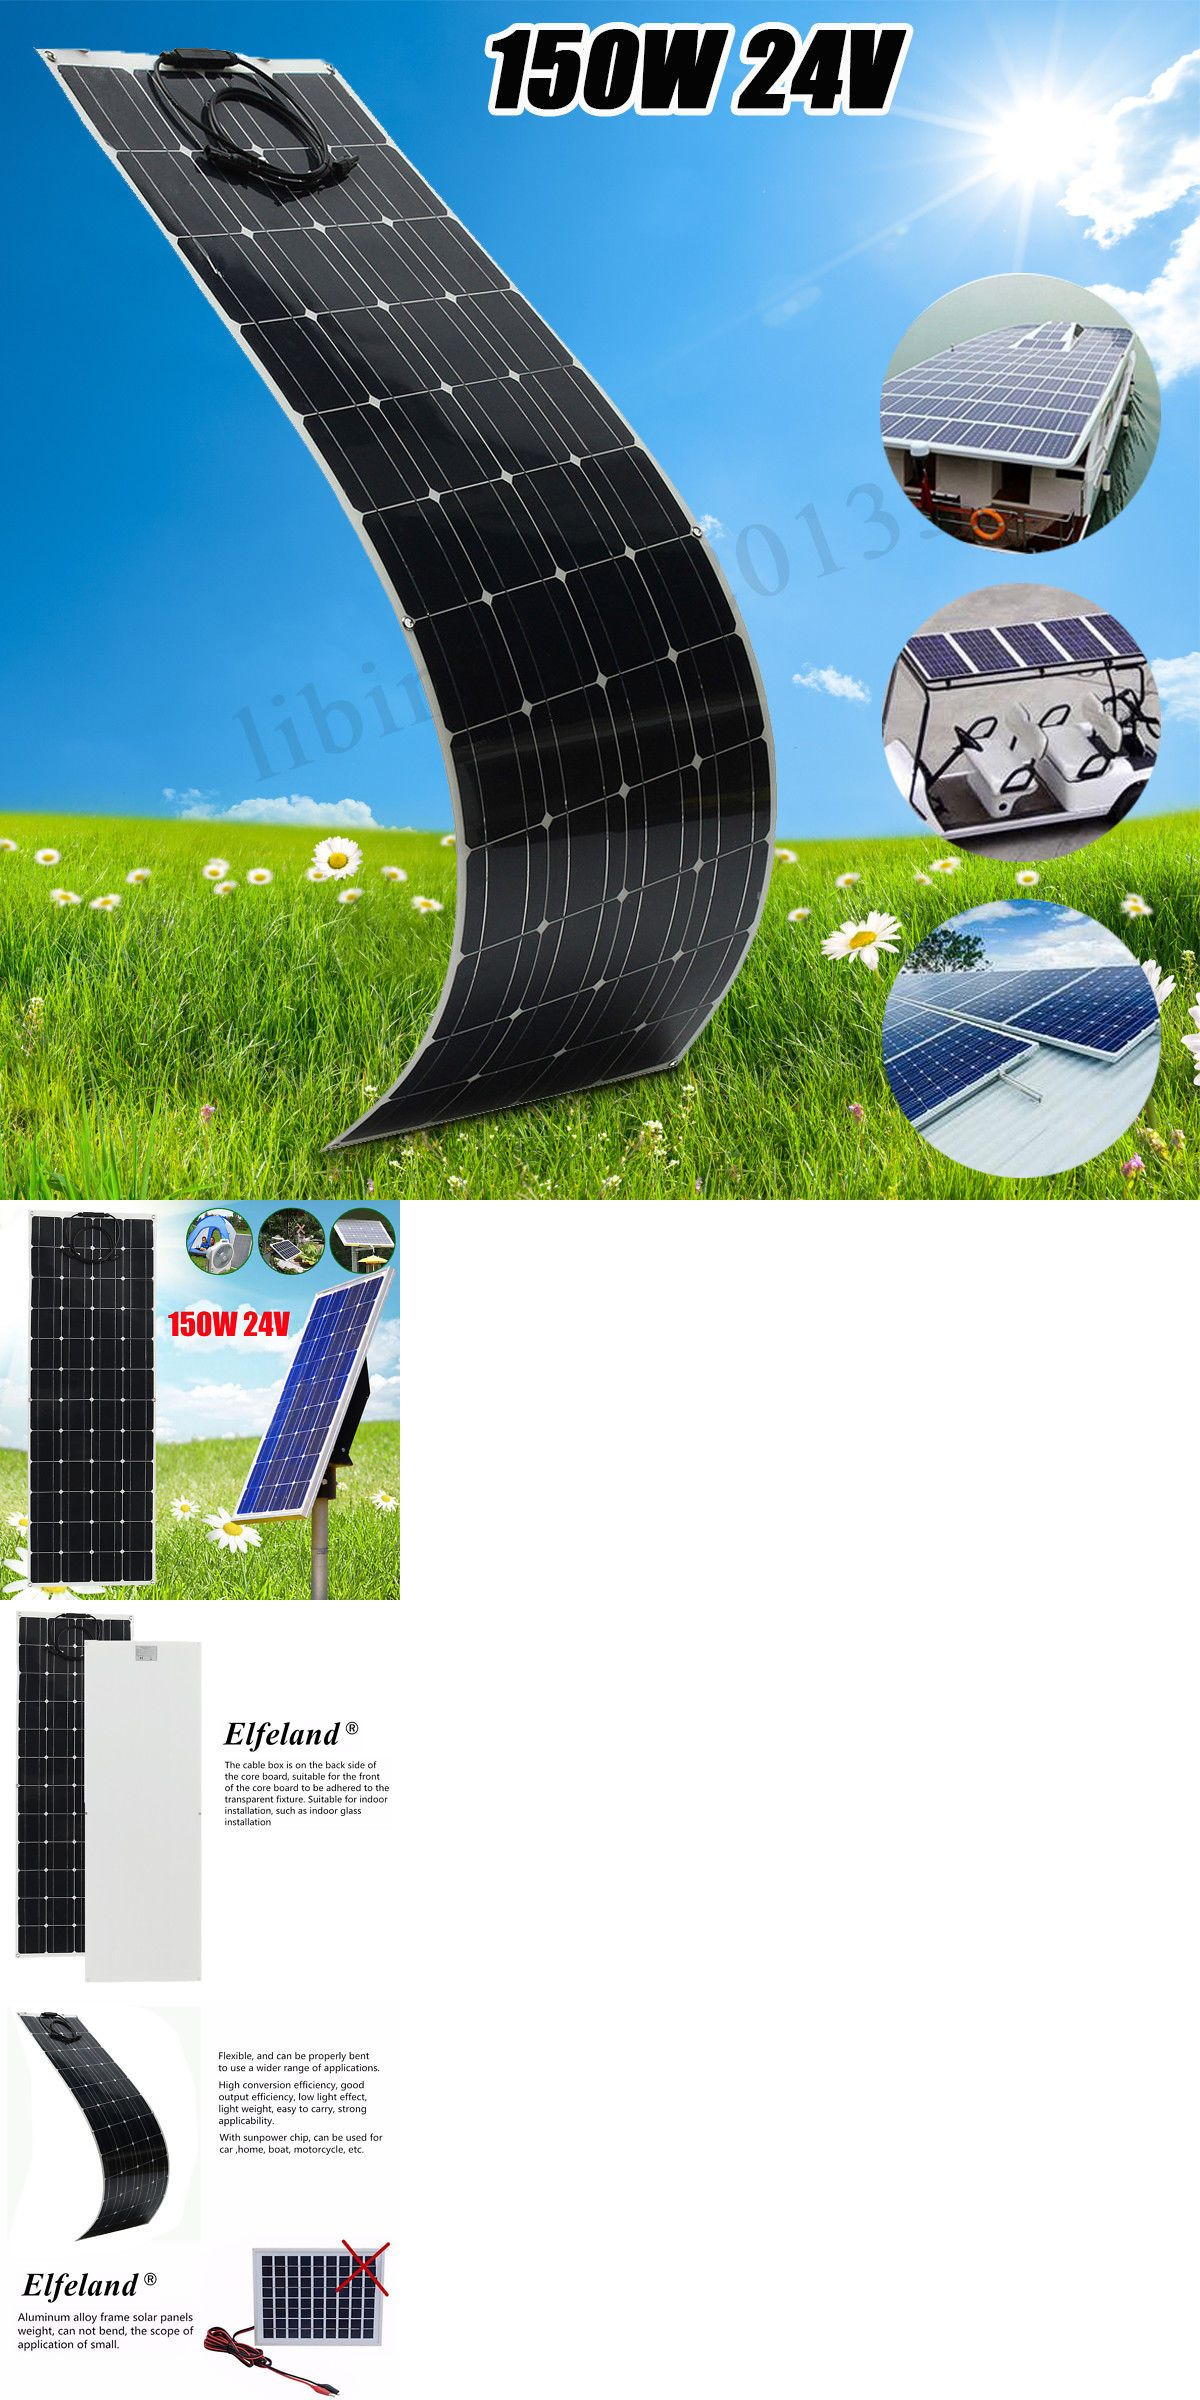 Chargers And Inverters 41980 150w 24v A Class Solar Panel Semi Flexible Off Grid Battery W Cable For Rv Boat Buy It Now Only Solar Off Grid Batteries 150w